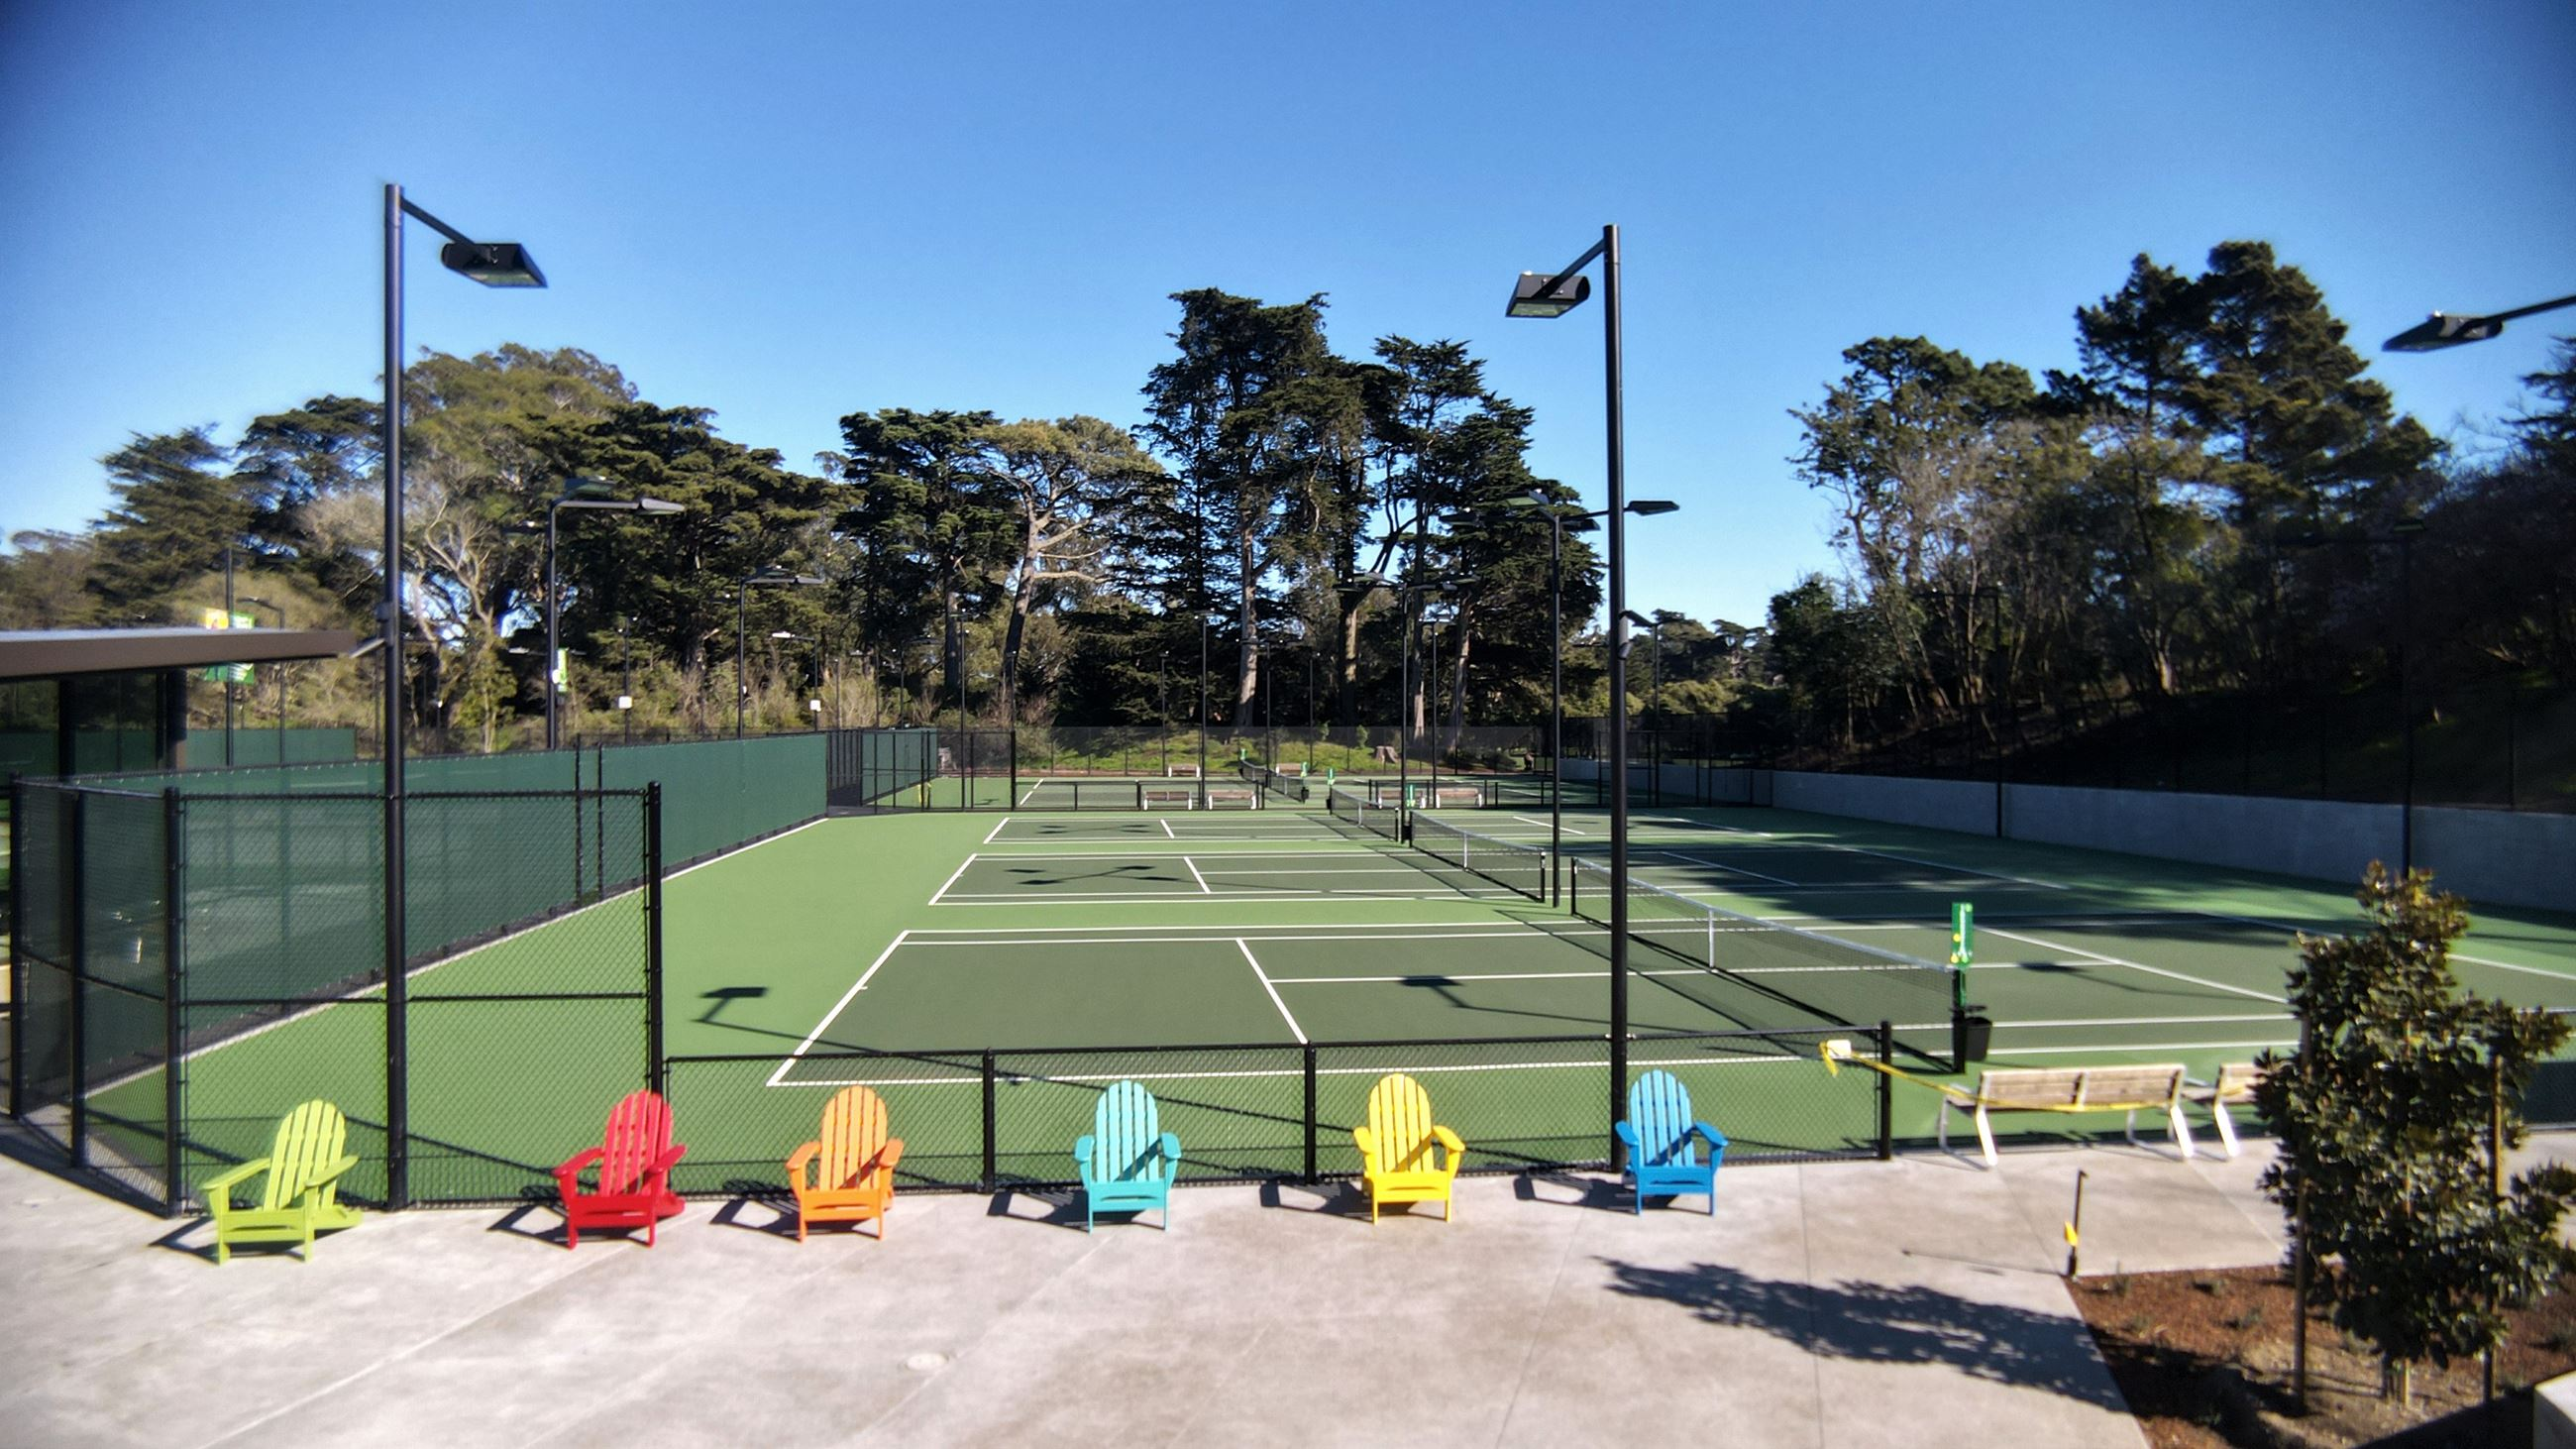 Adirondack chairs of multiple colors sit in front of the new tennis court.